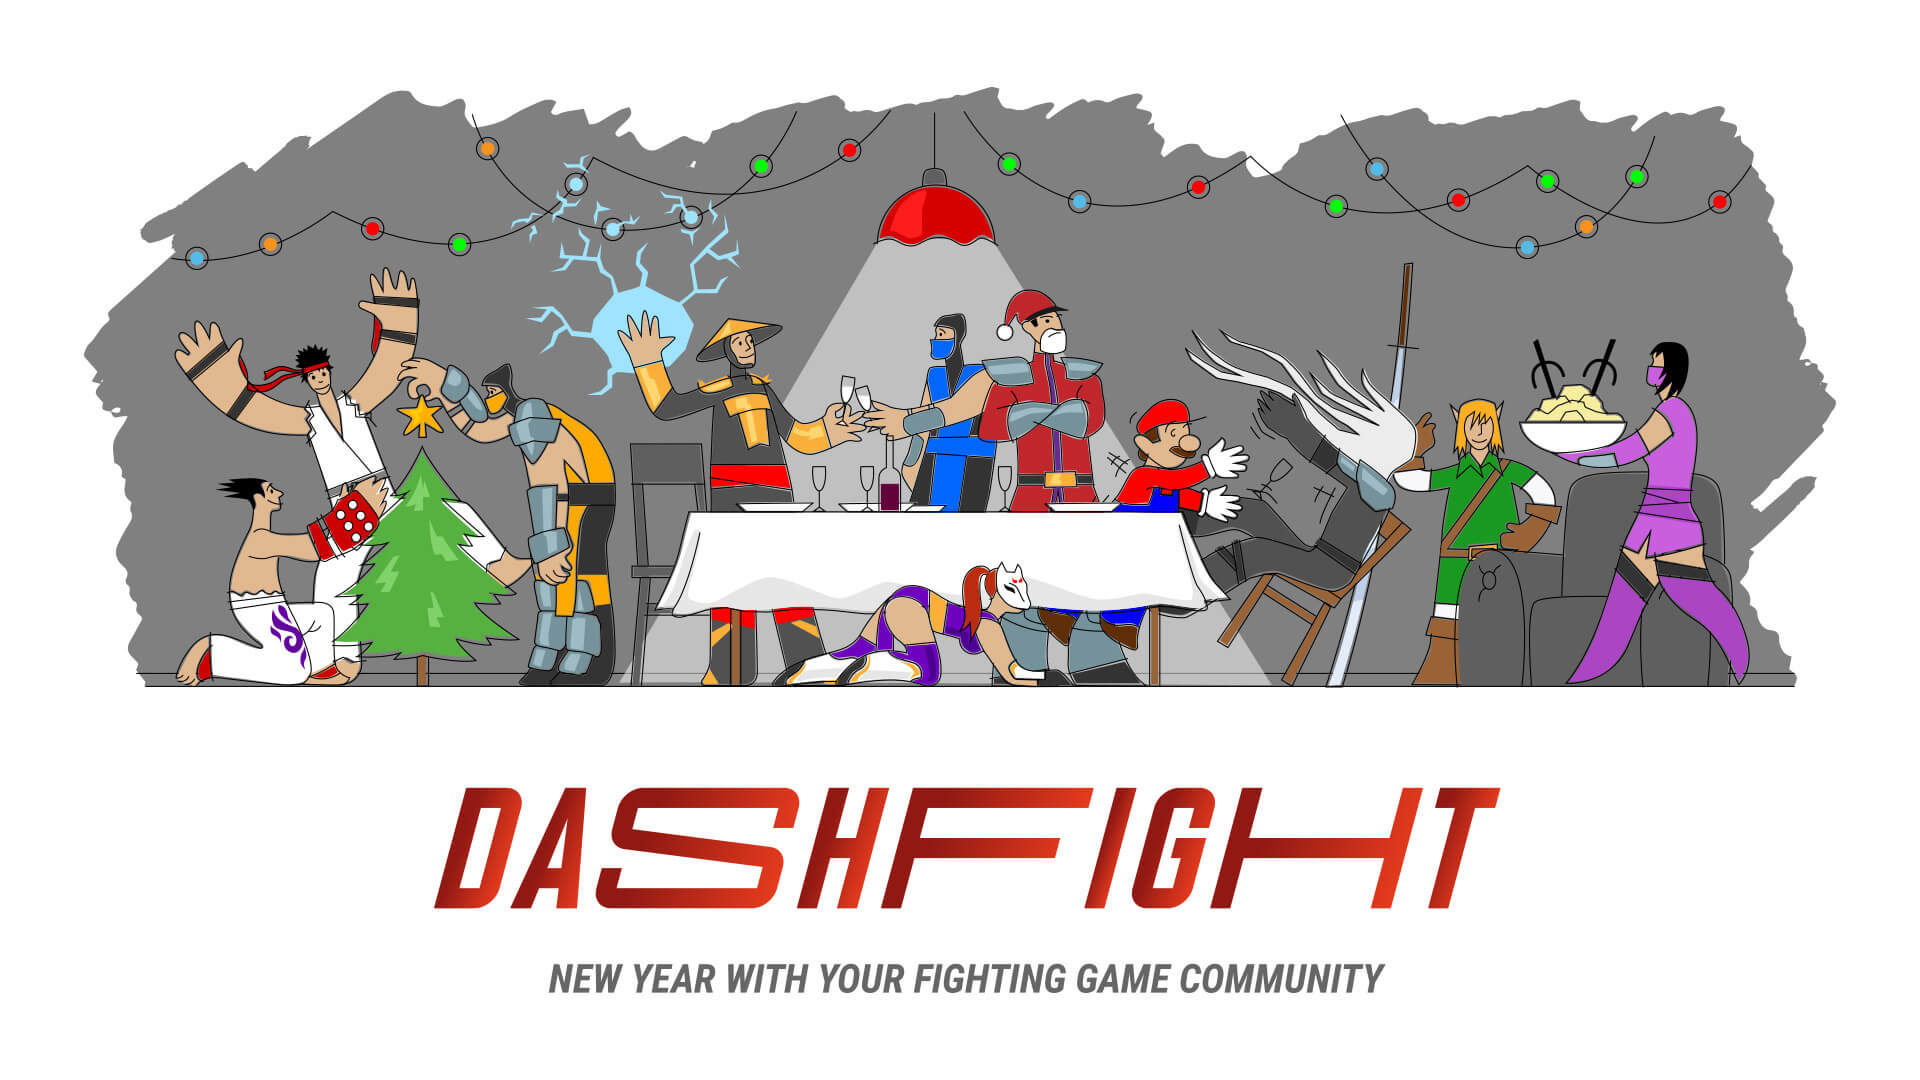 A season's greetings from all of us at DashFight!